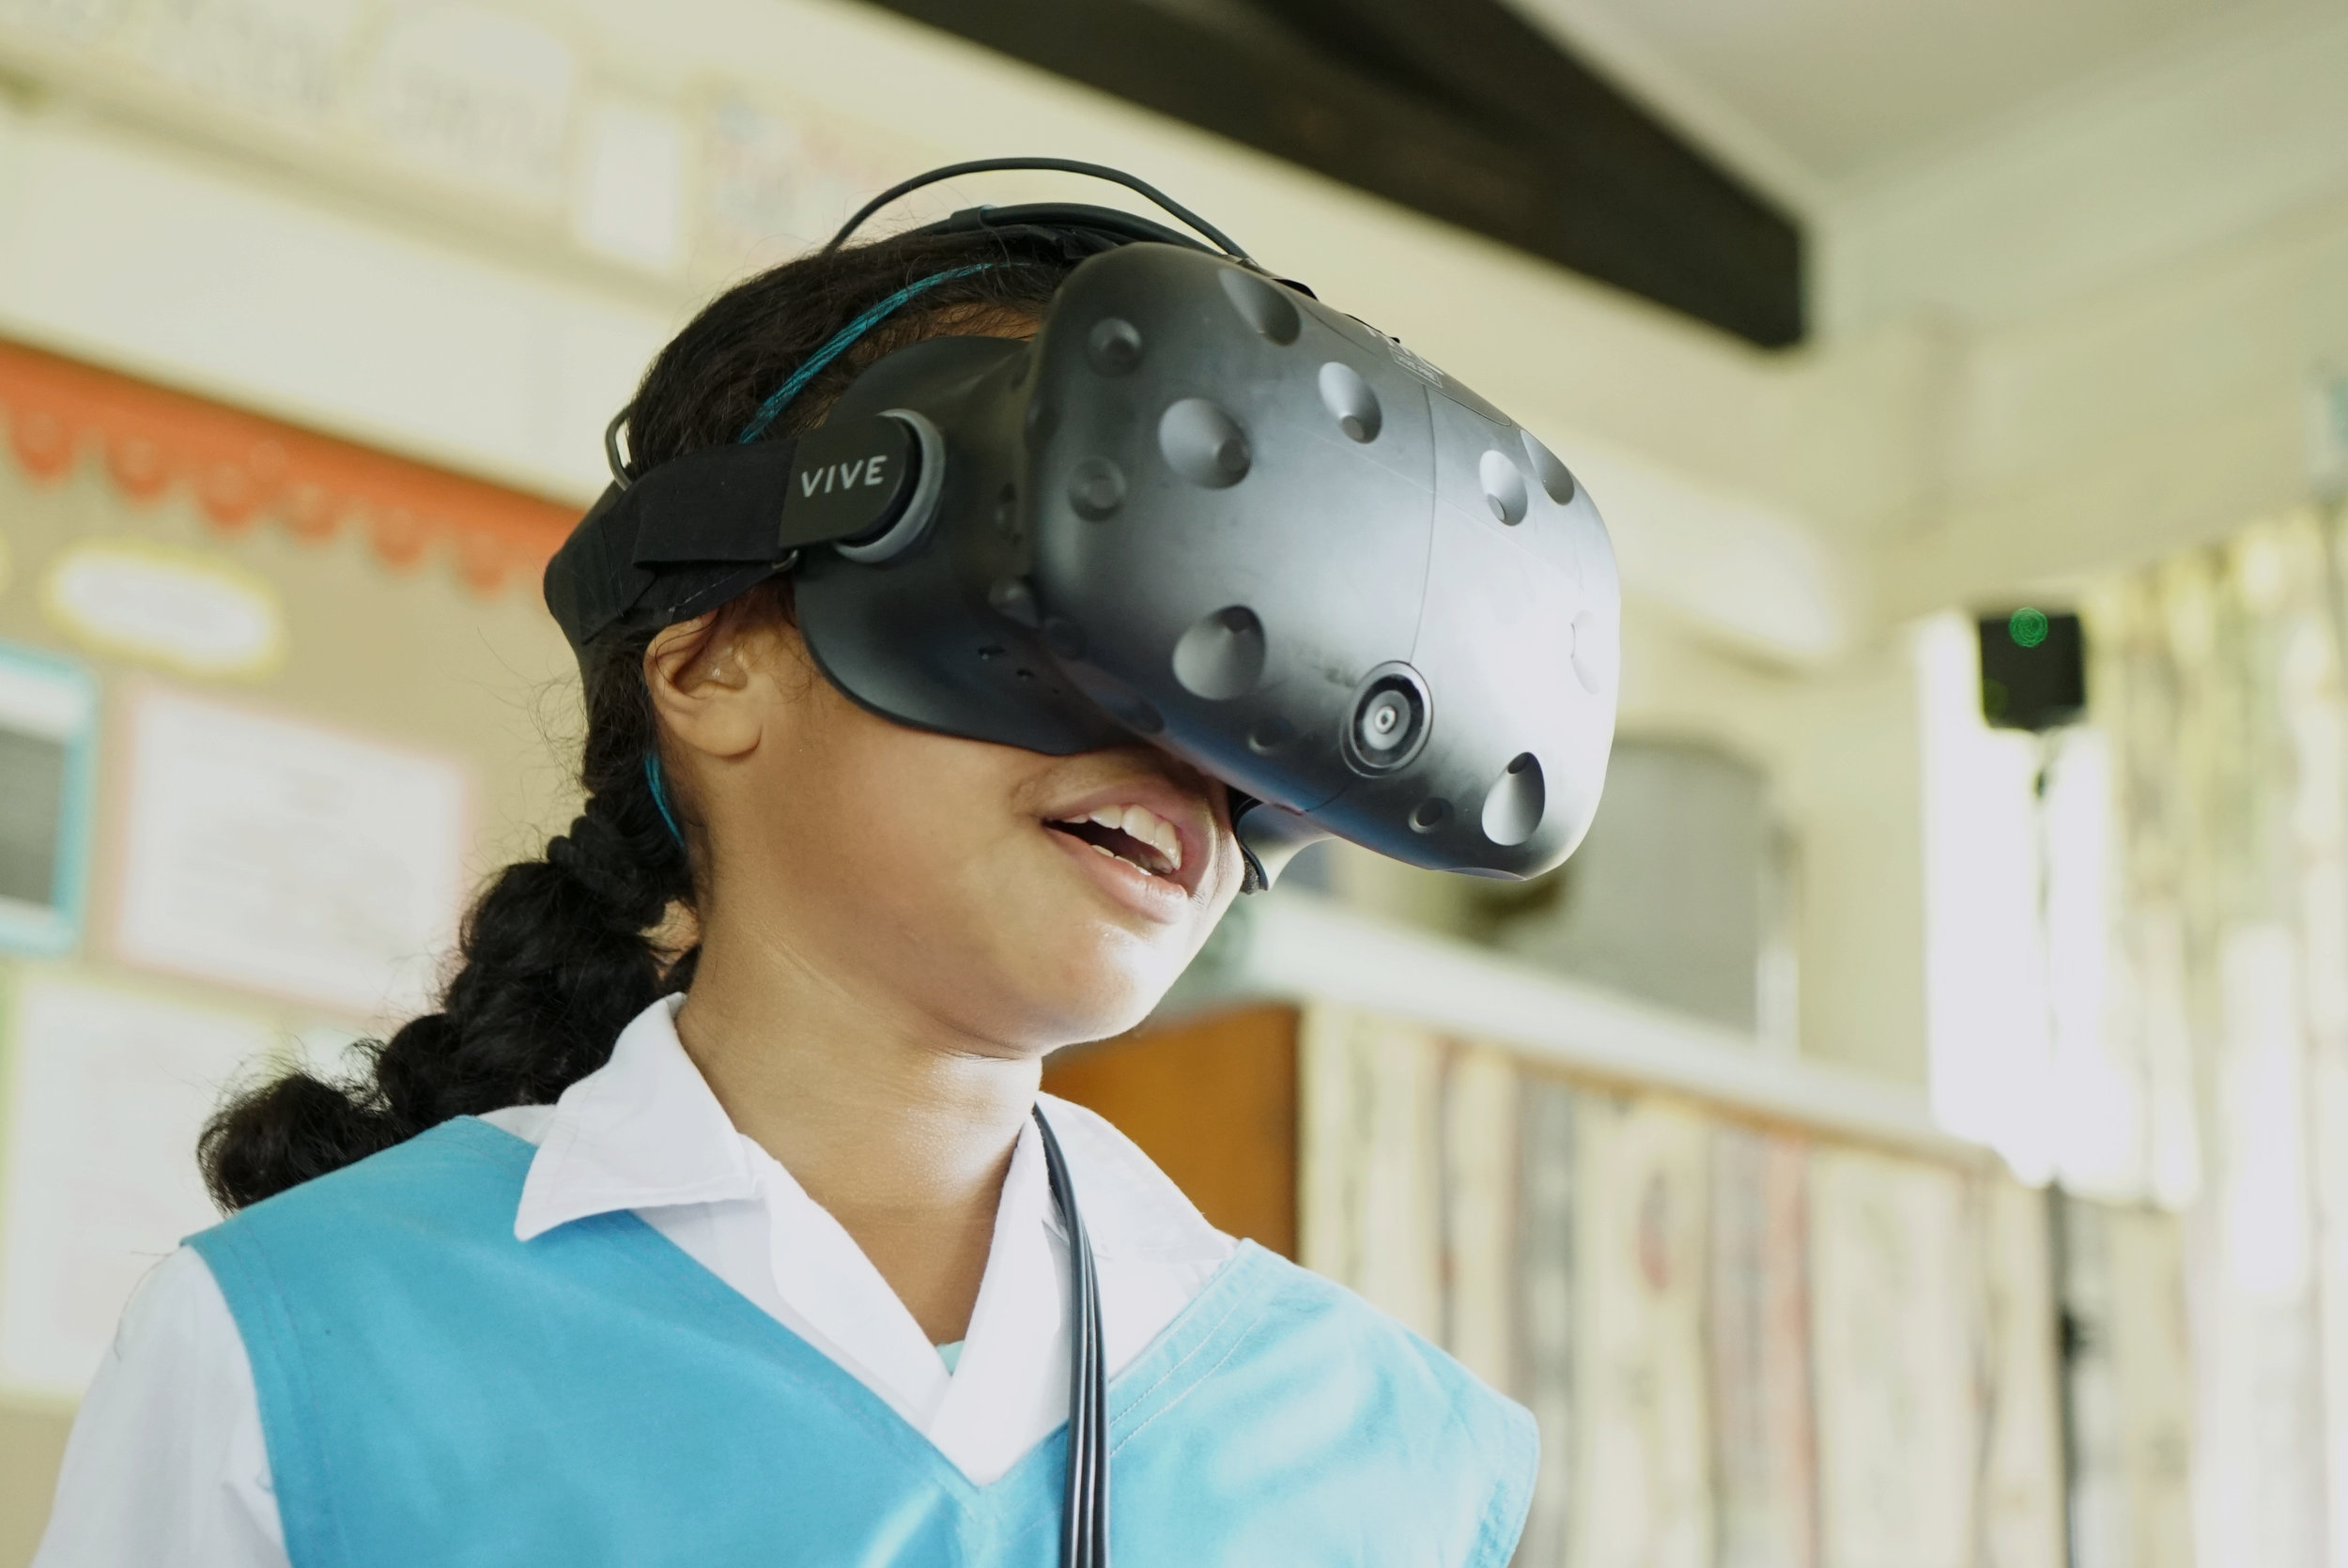 A student from Stella Maris Primary School in Fiji tests the BTS VR experience